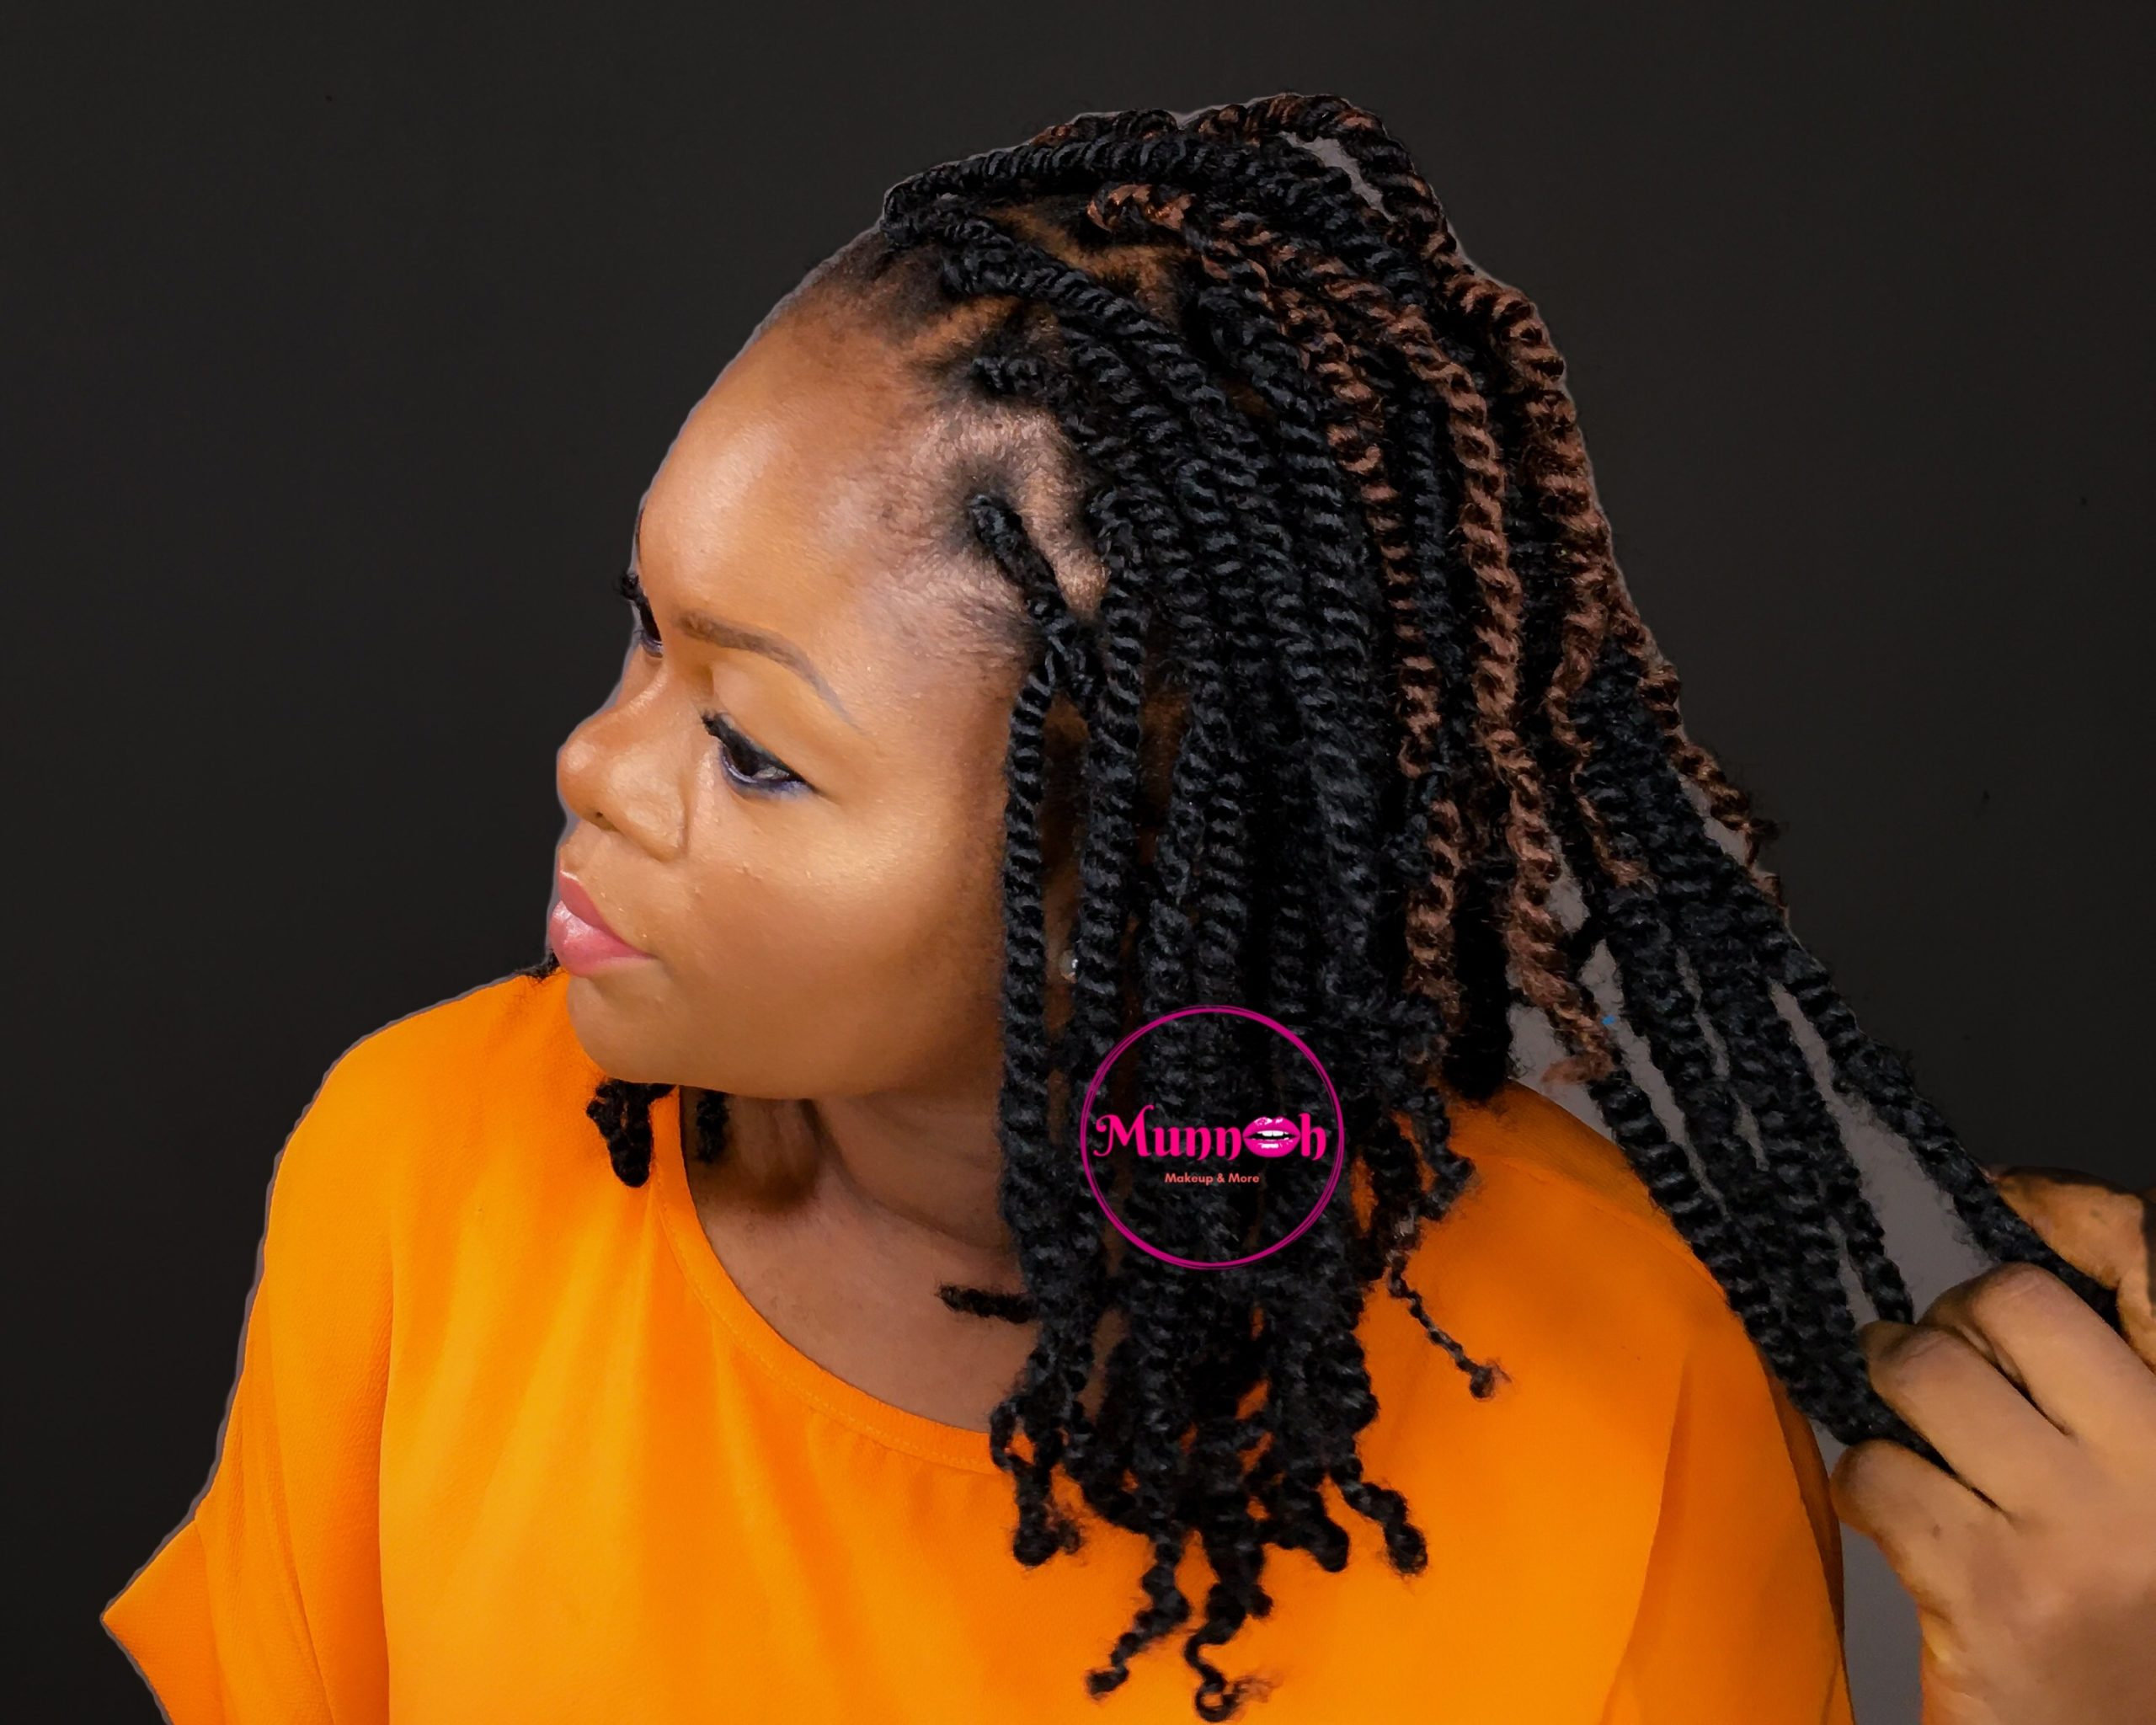 DIY Spring Twist / Passion Twist Braids Using Rubber Band Method